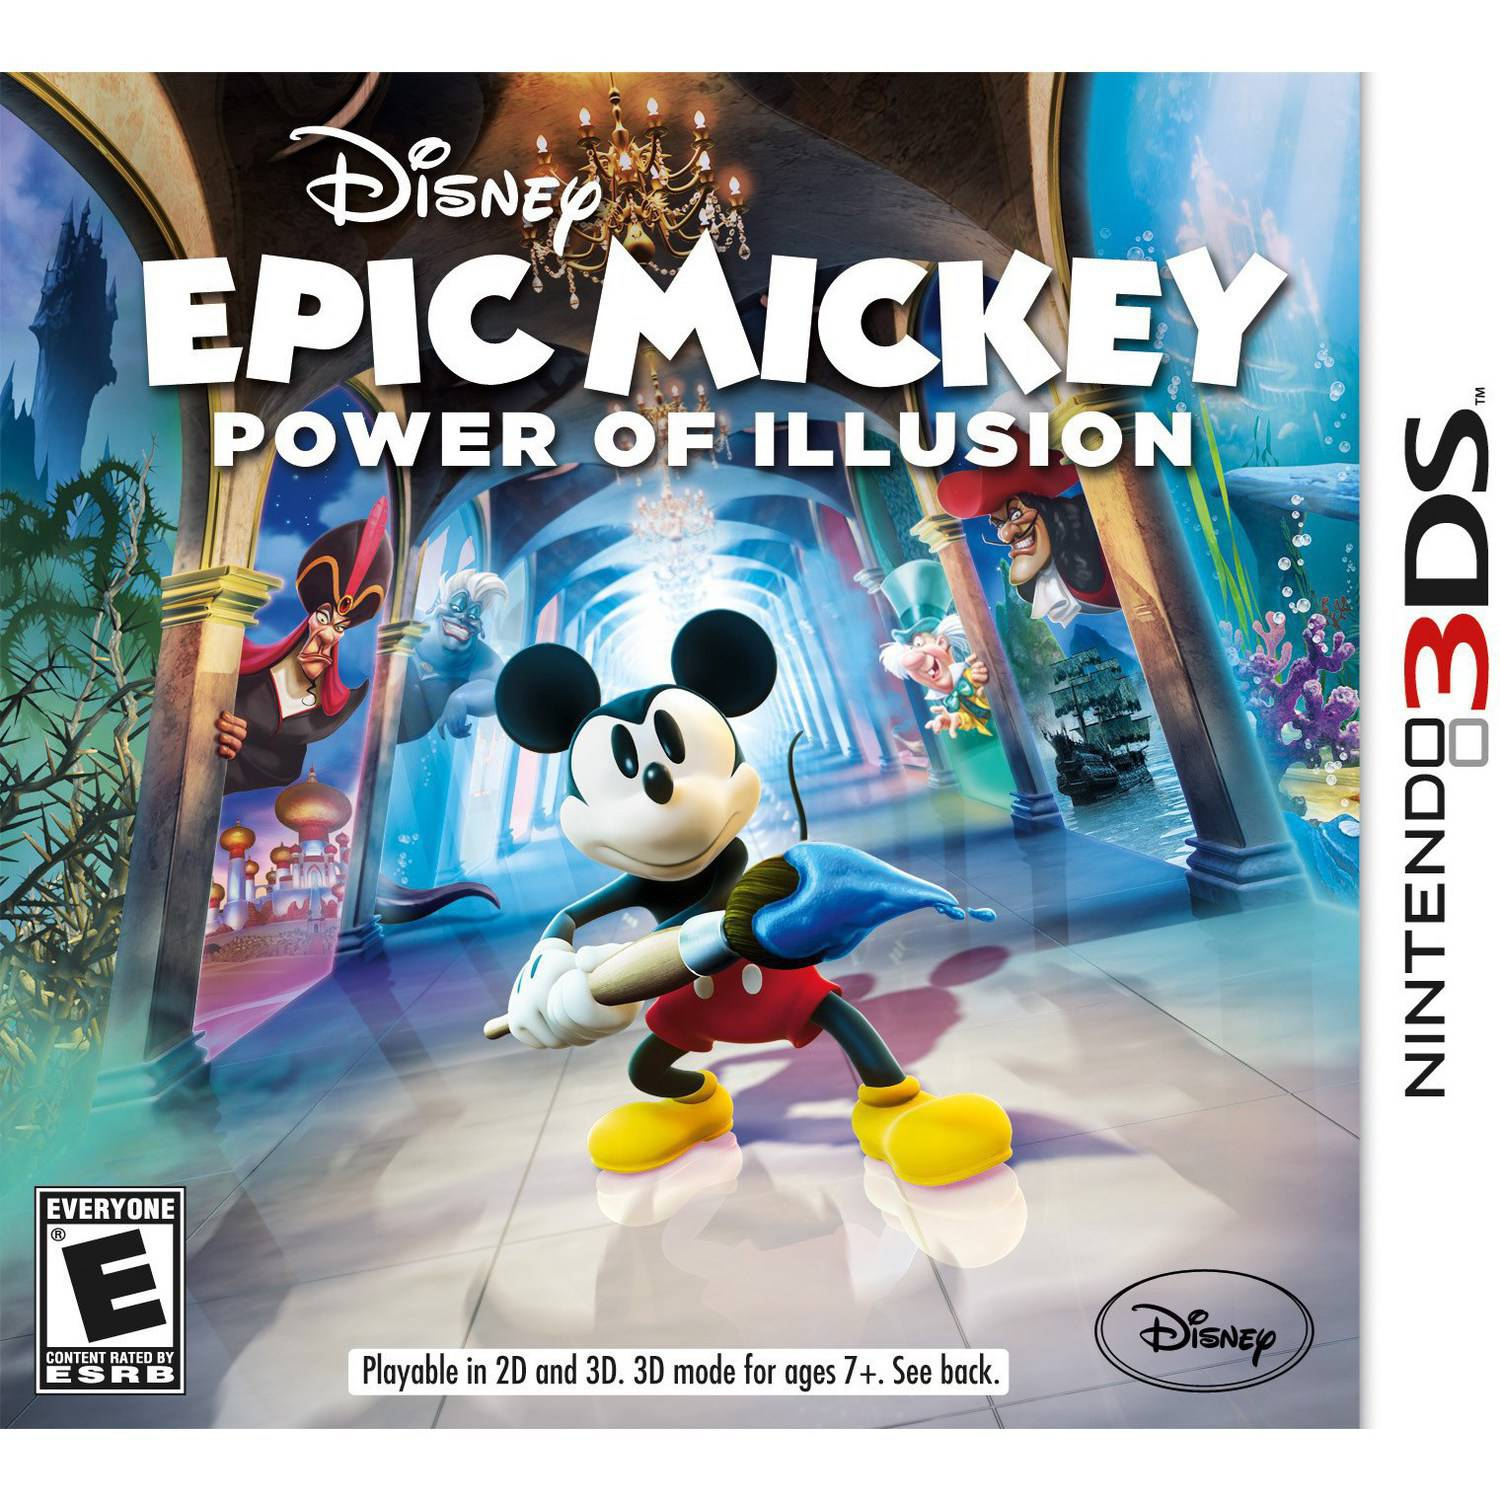 Disney Epic Mickey 2: Power of Illusion (Nintendo 3DS)